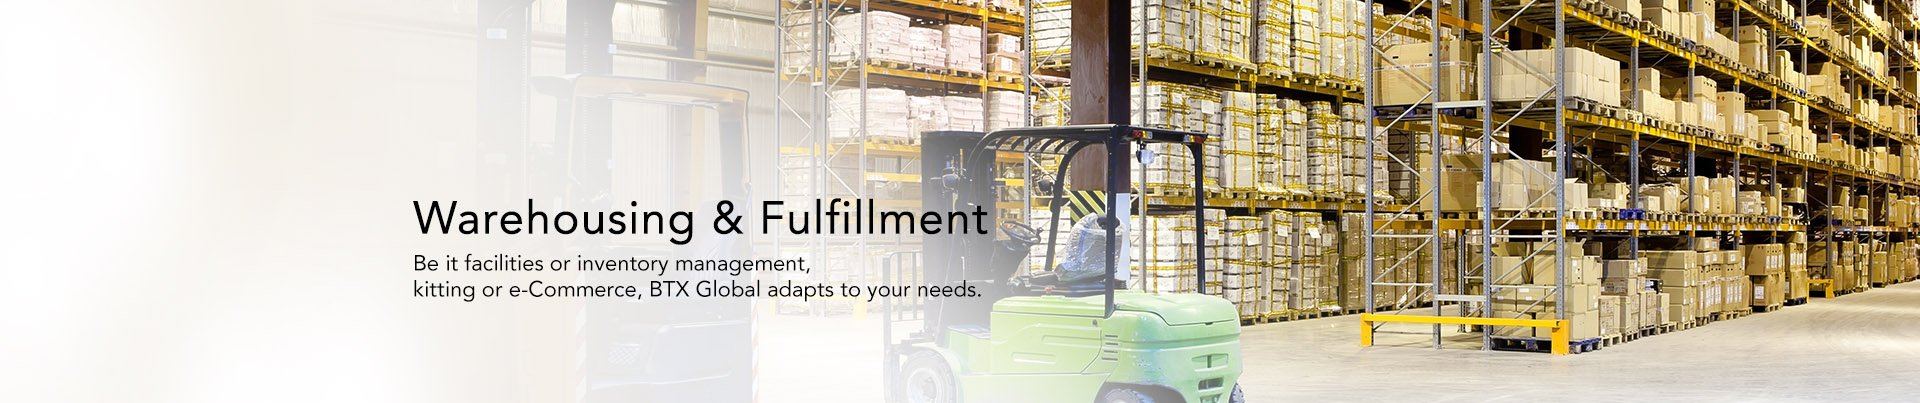 Warehousing & Fulfillment Services